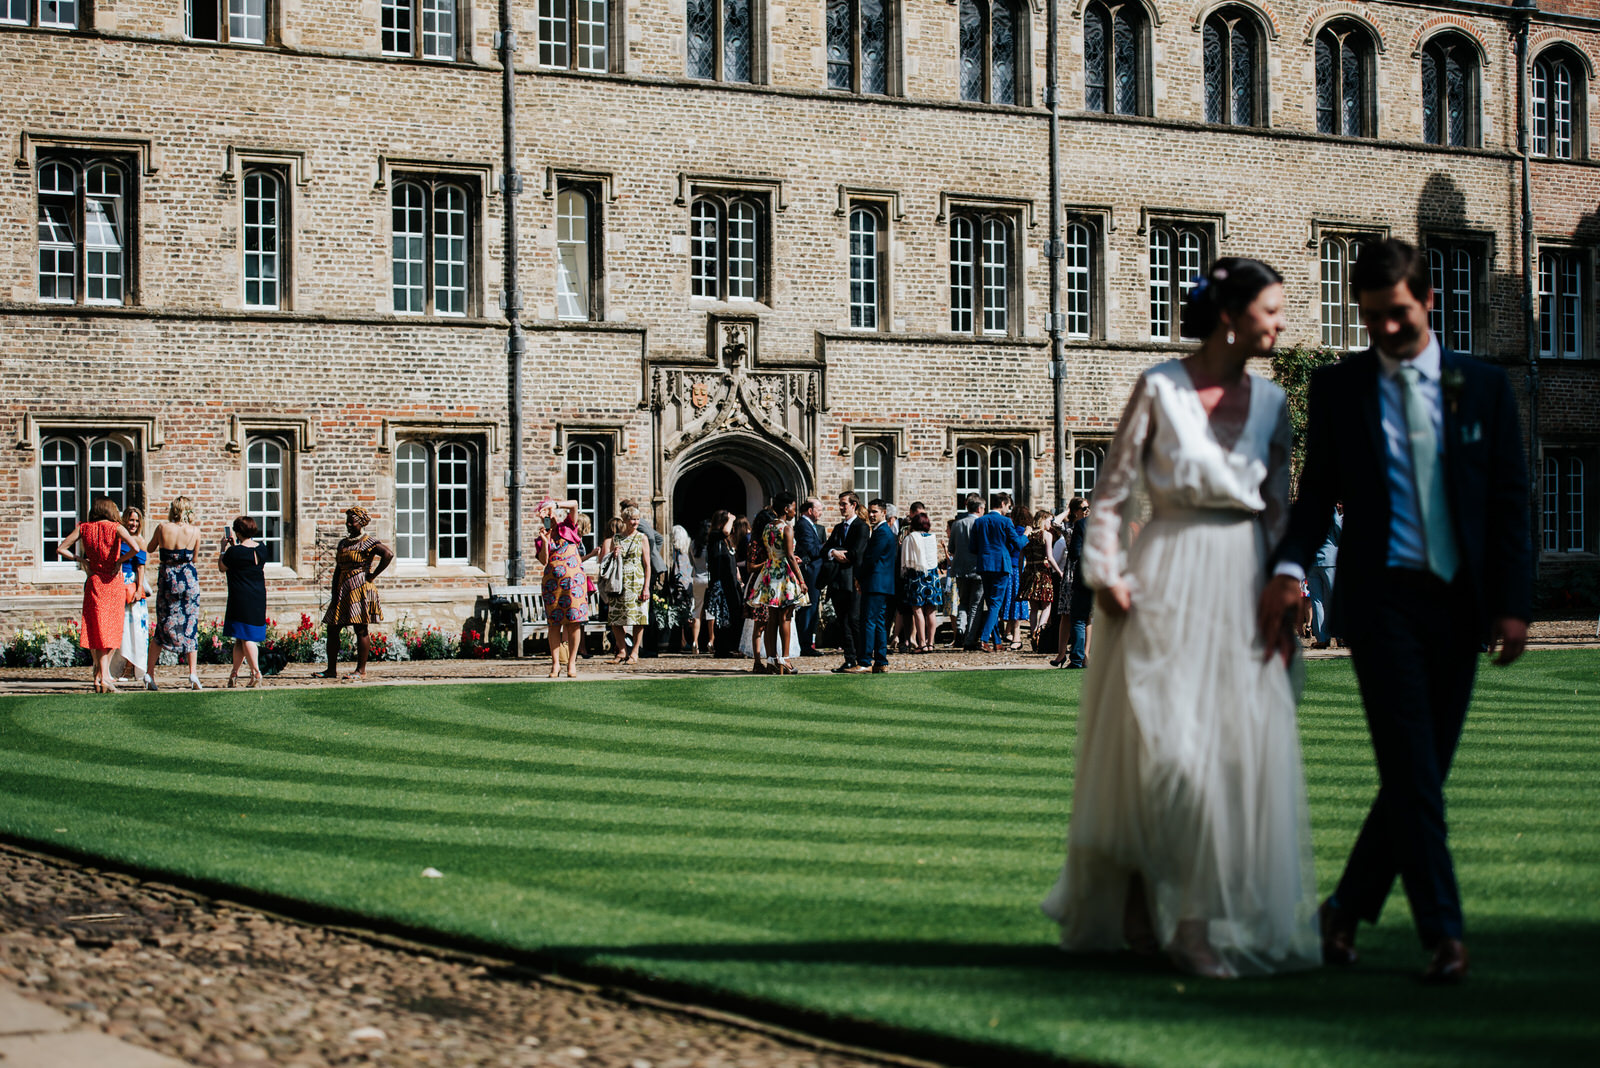 Bride and groom look towards guests as they enjoy themselves on